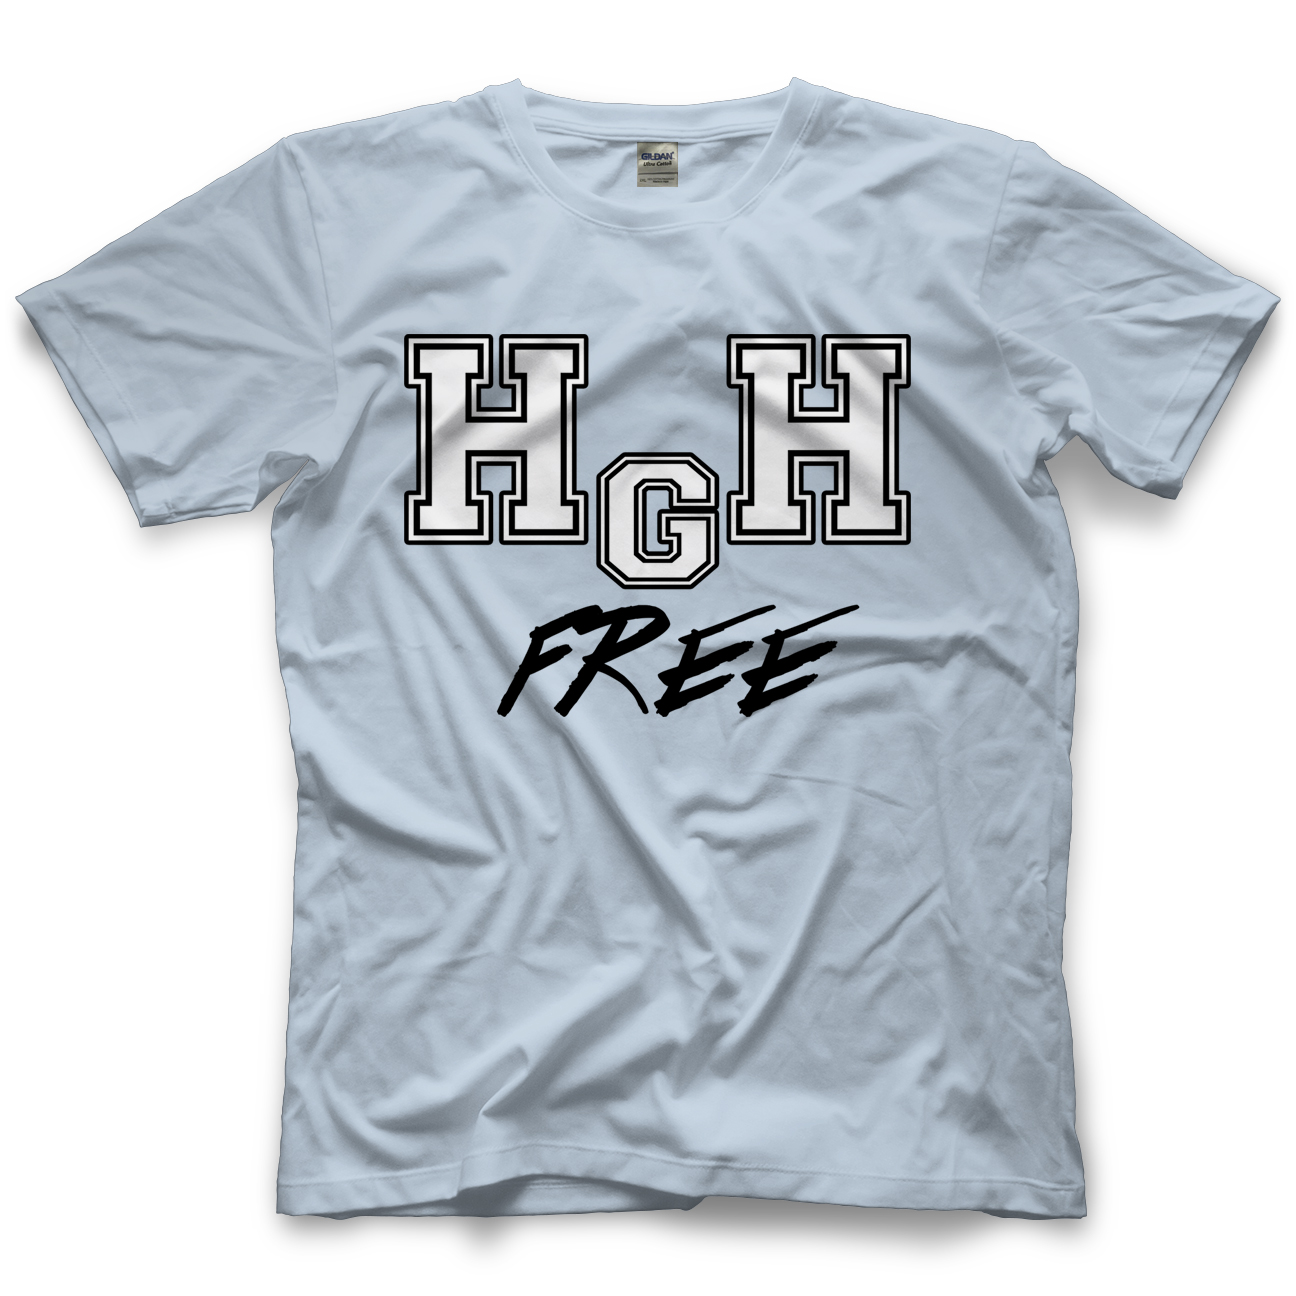 Moms Against HGH Free T-shirt